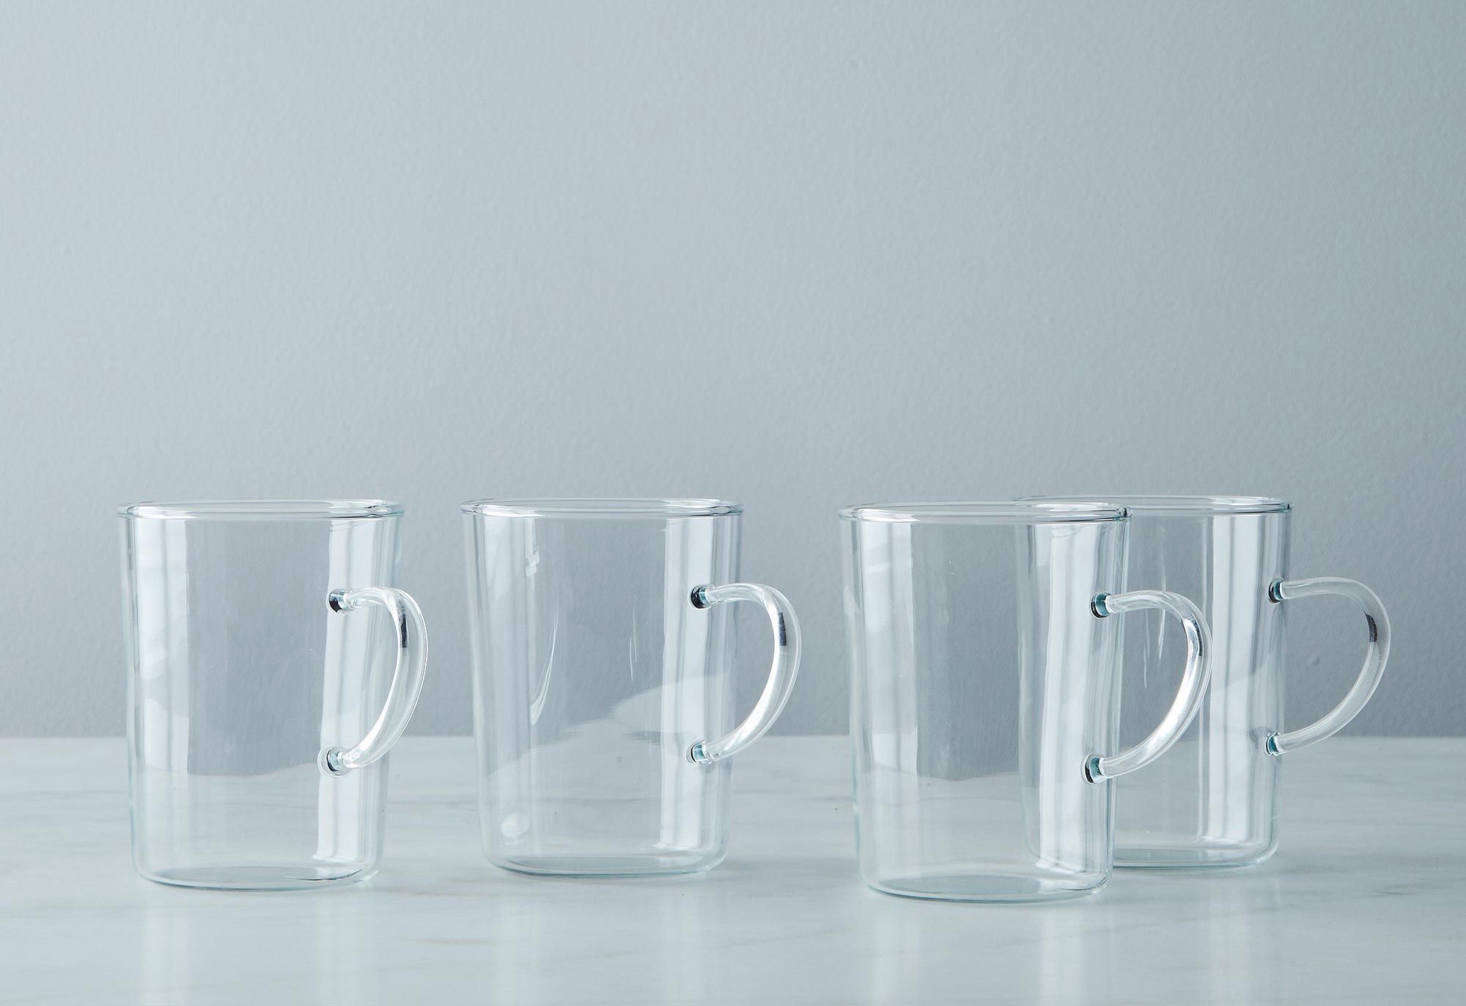 These Glass Tea Cups from French brand Palais des Thés are made in France and hold seven ounces each. They&#8